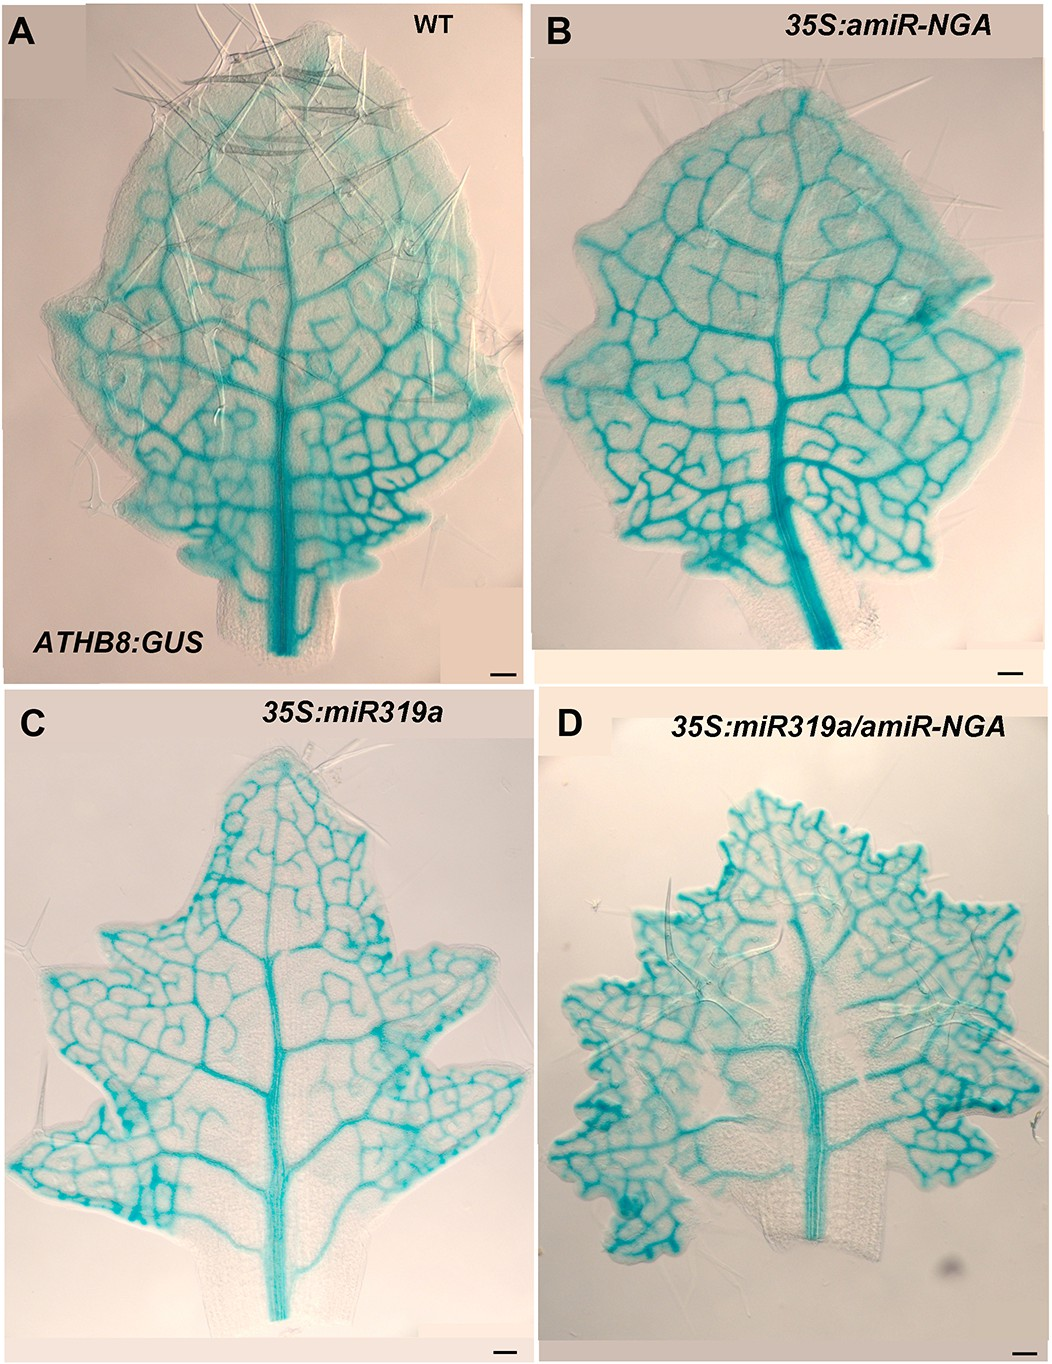 Figures And Data In Active Suppression Of A Leaf Meristem With Palisade Mesophyll Cell Diagram Likewise Plant Athb8gus Expression Leaves Reduced Cin Tcps Ngatha Gene Activities